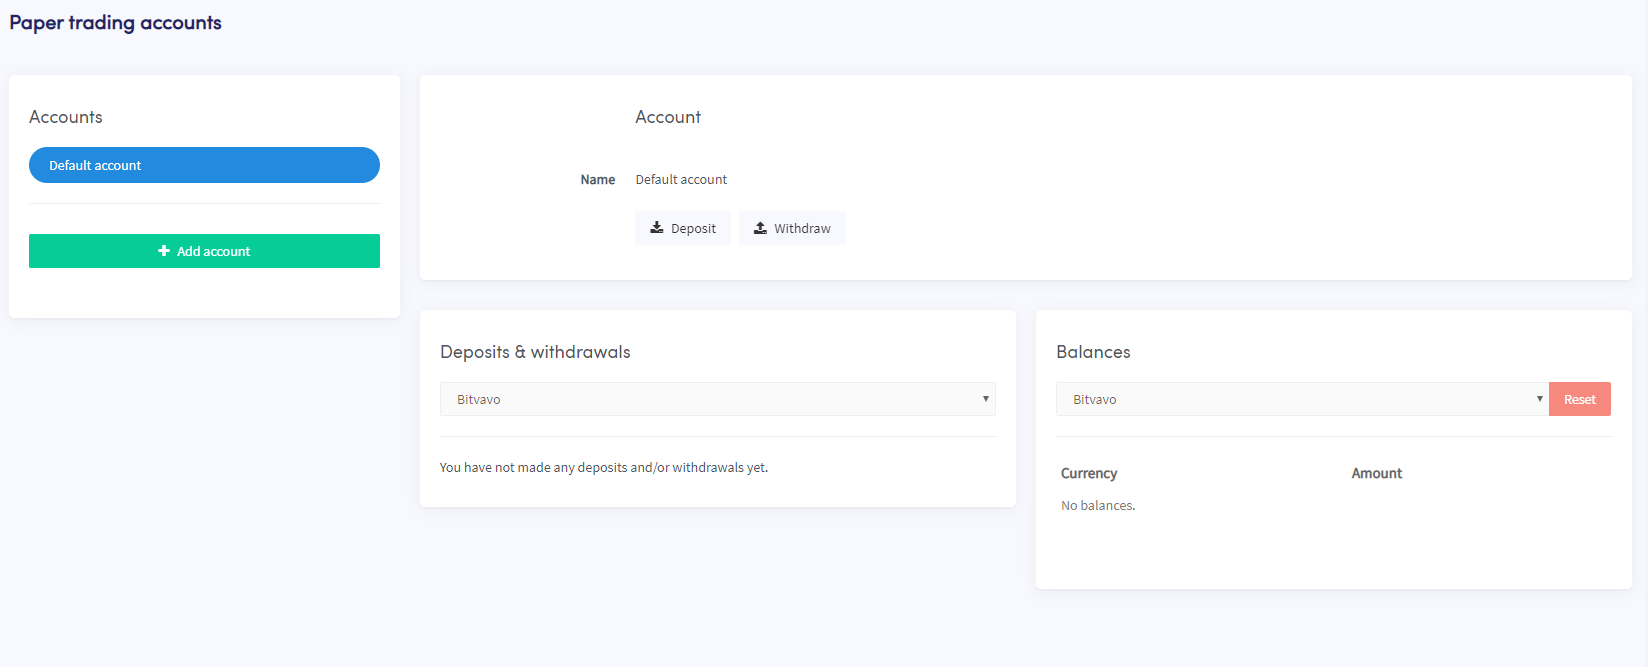 Papertrading accounts dashboard